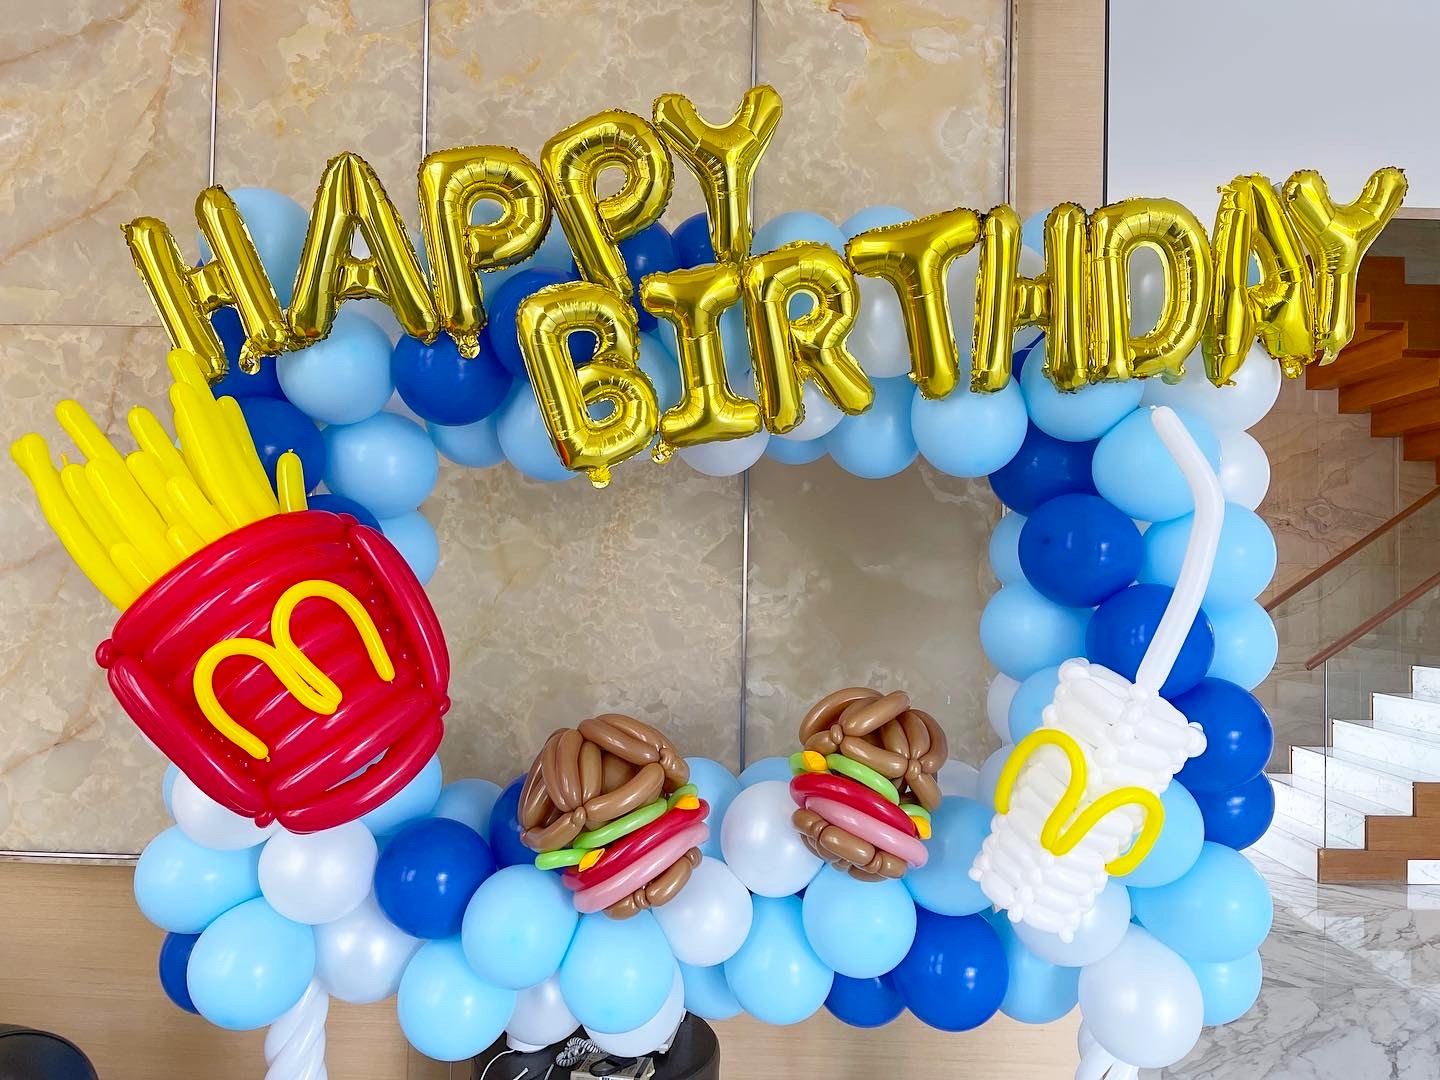 Fast Food Theme Balloon Photo Frame Decorations